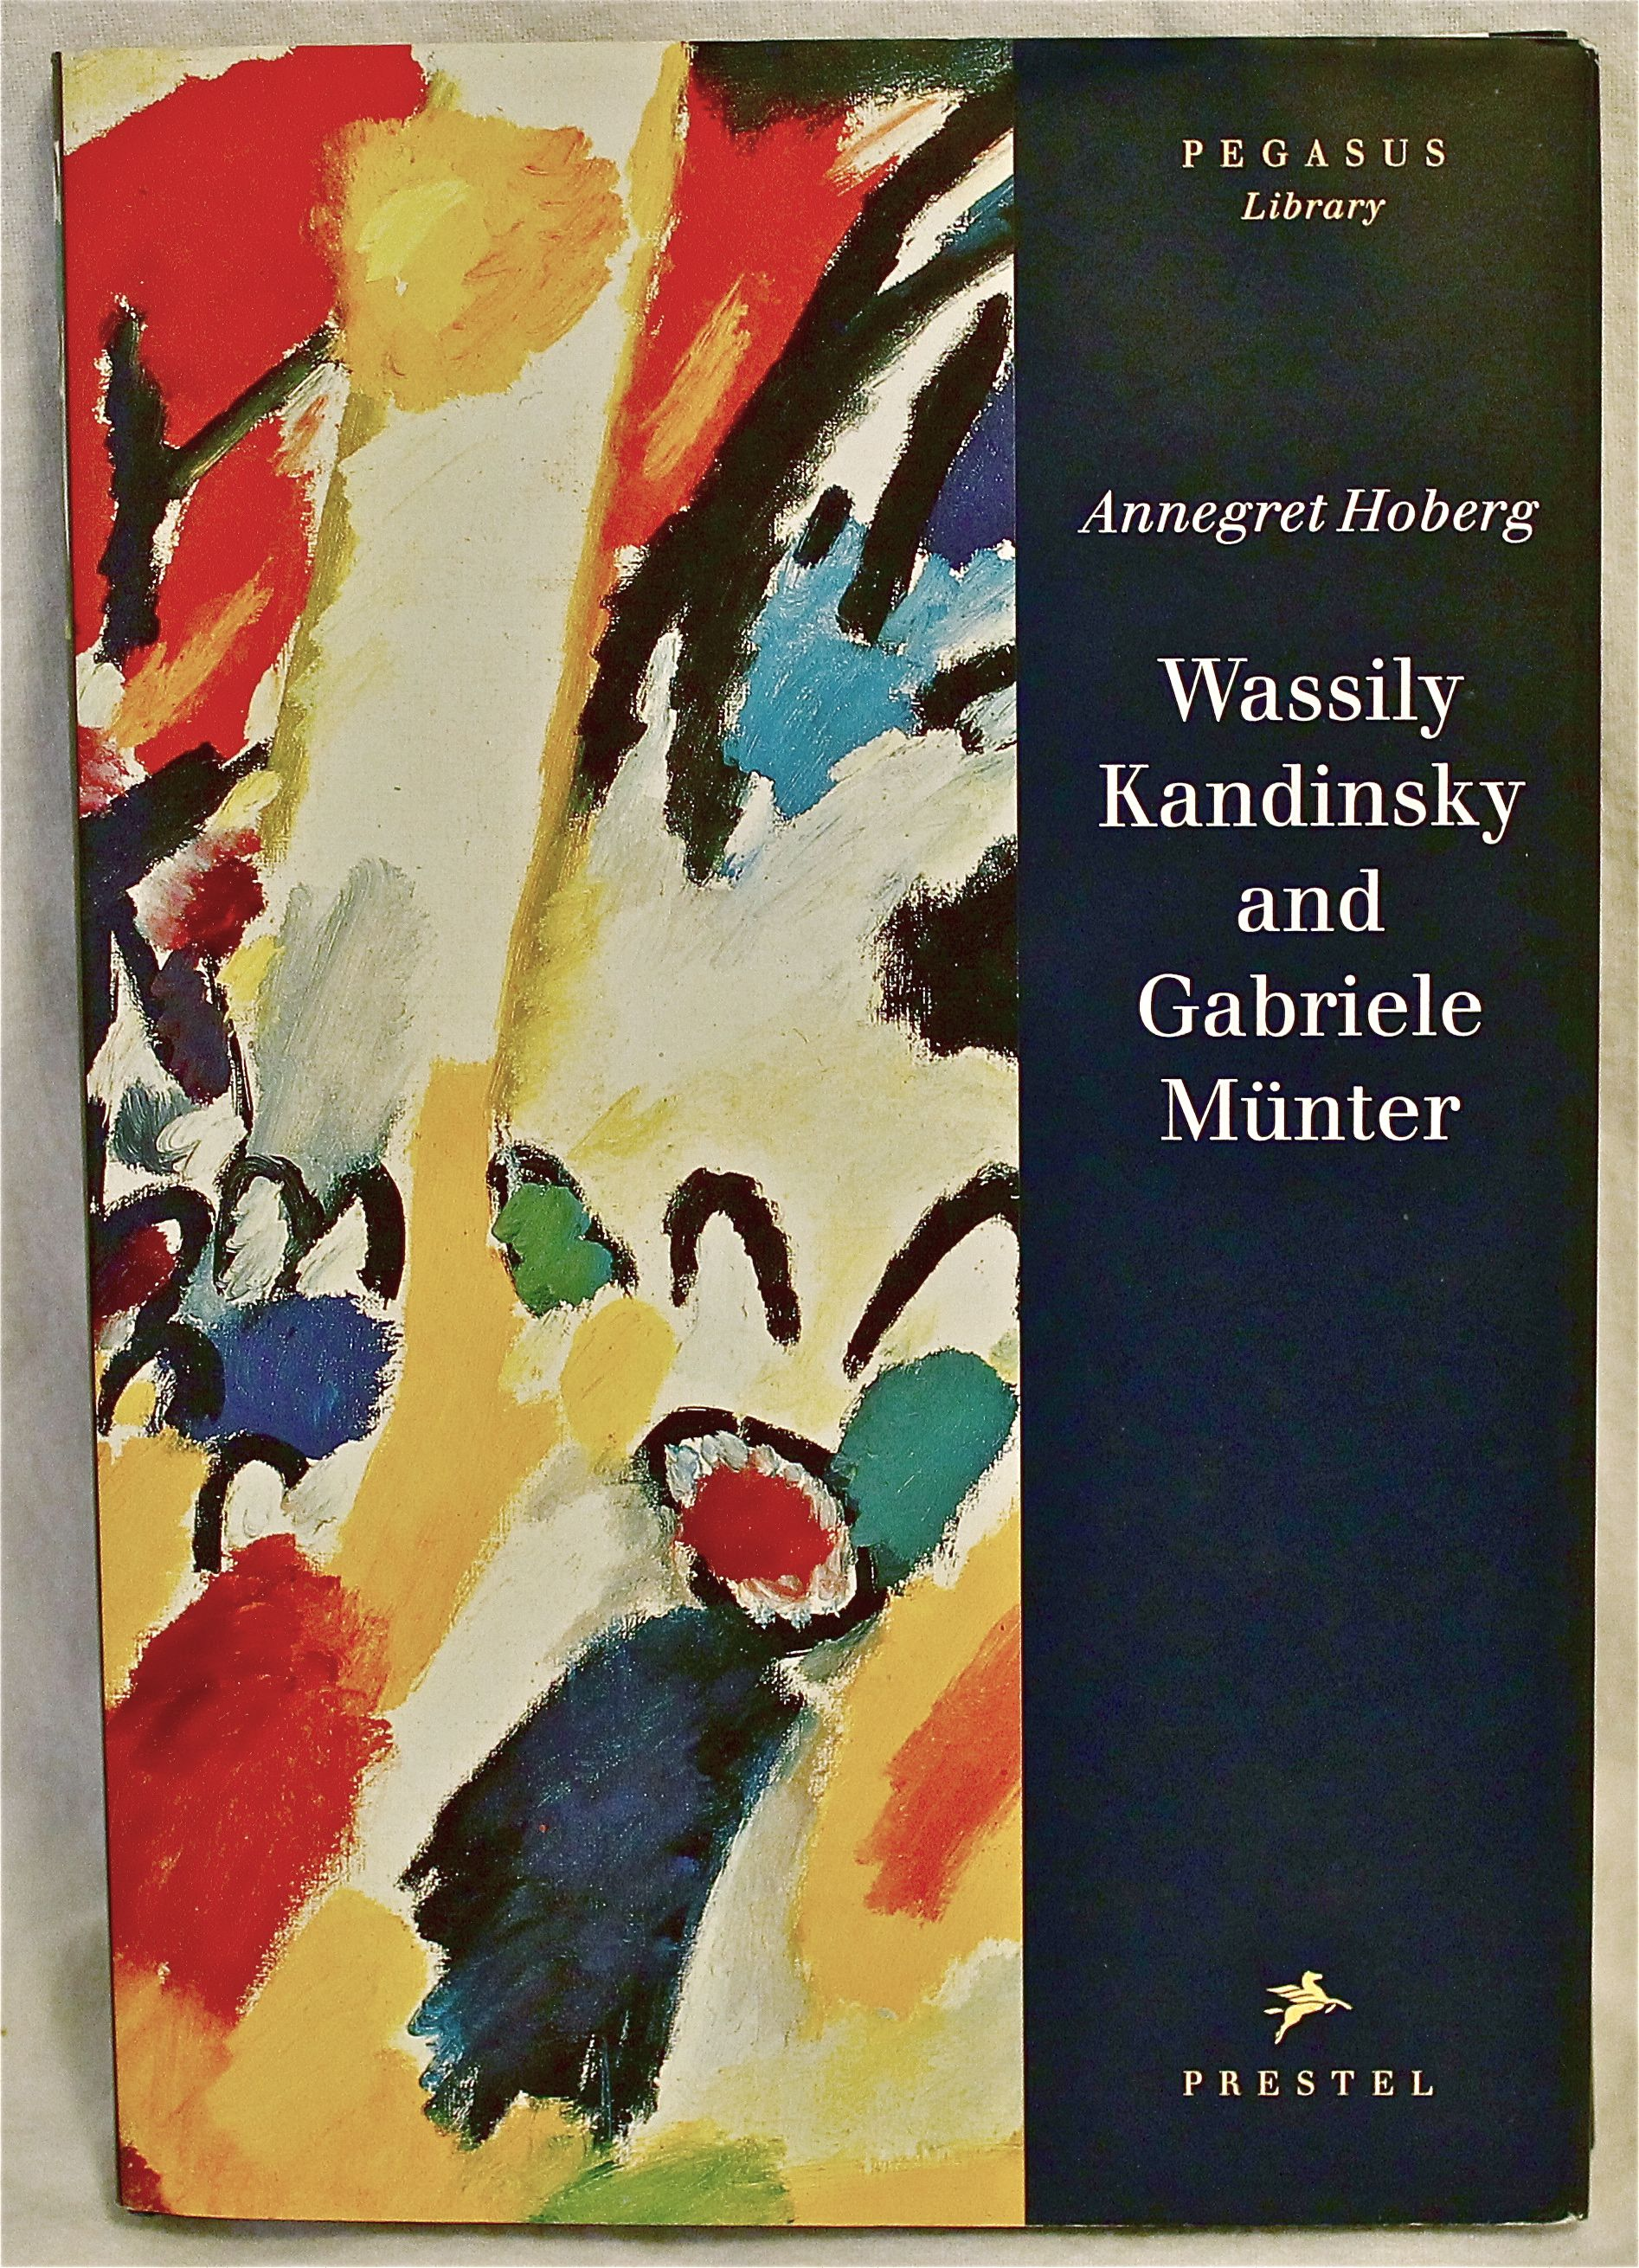 Image for Wassily Kandinsky and Gabriele Munter (Pegasus Library)